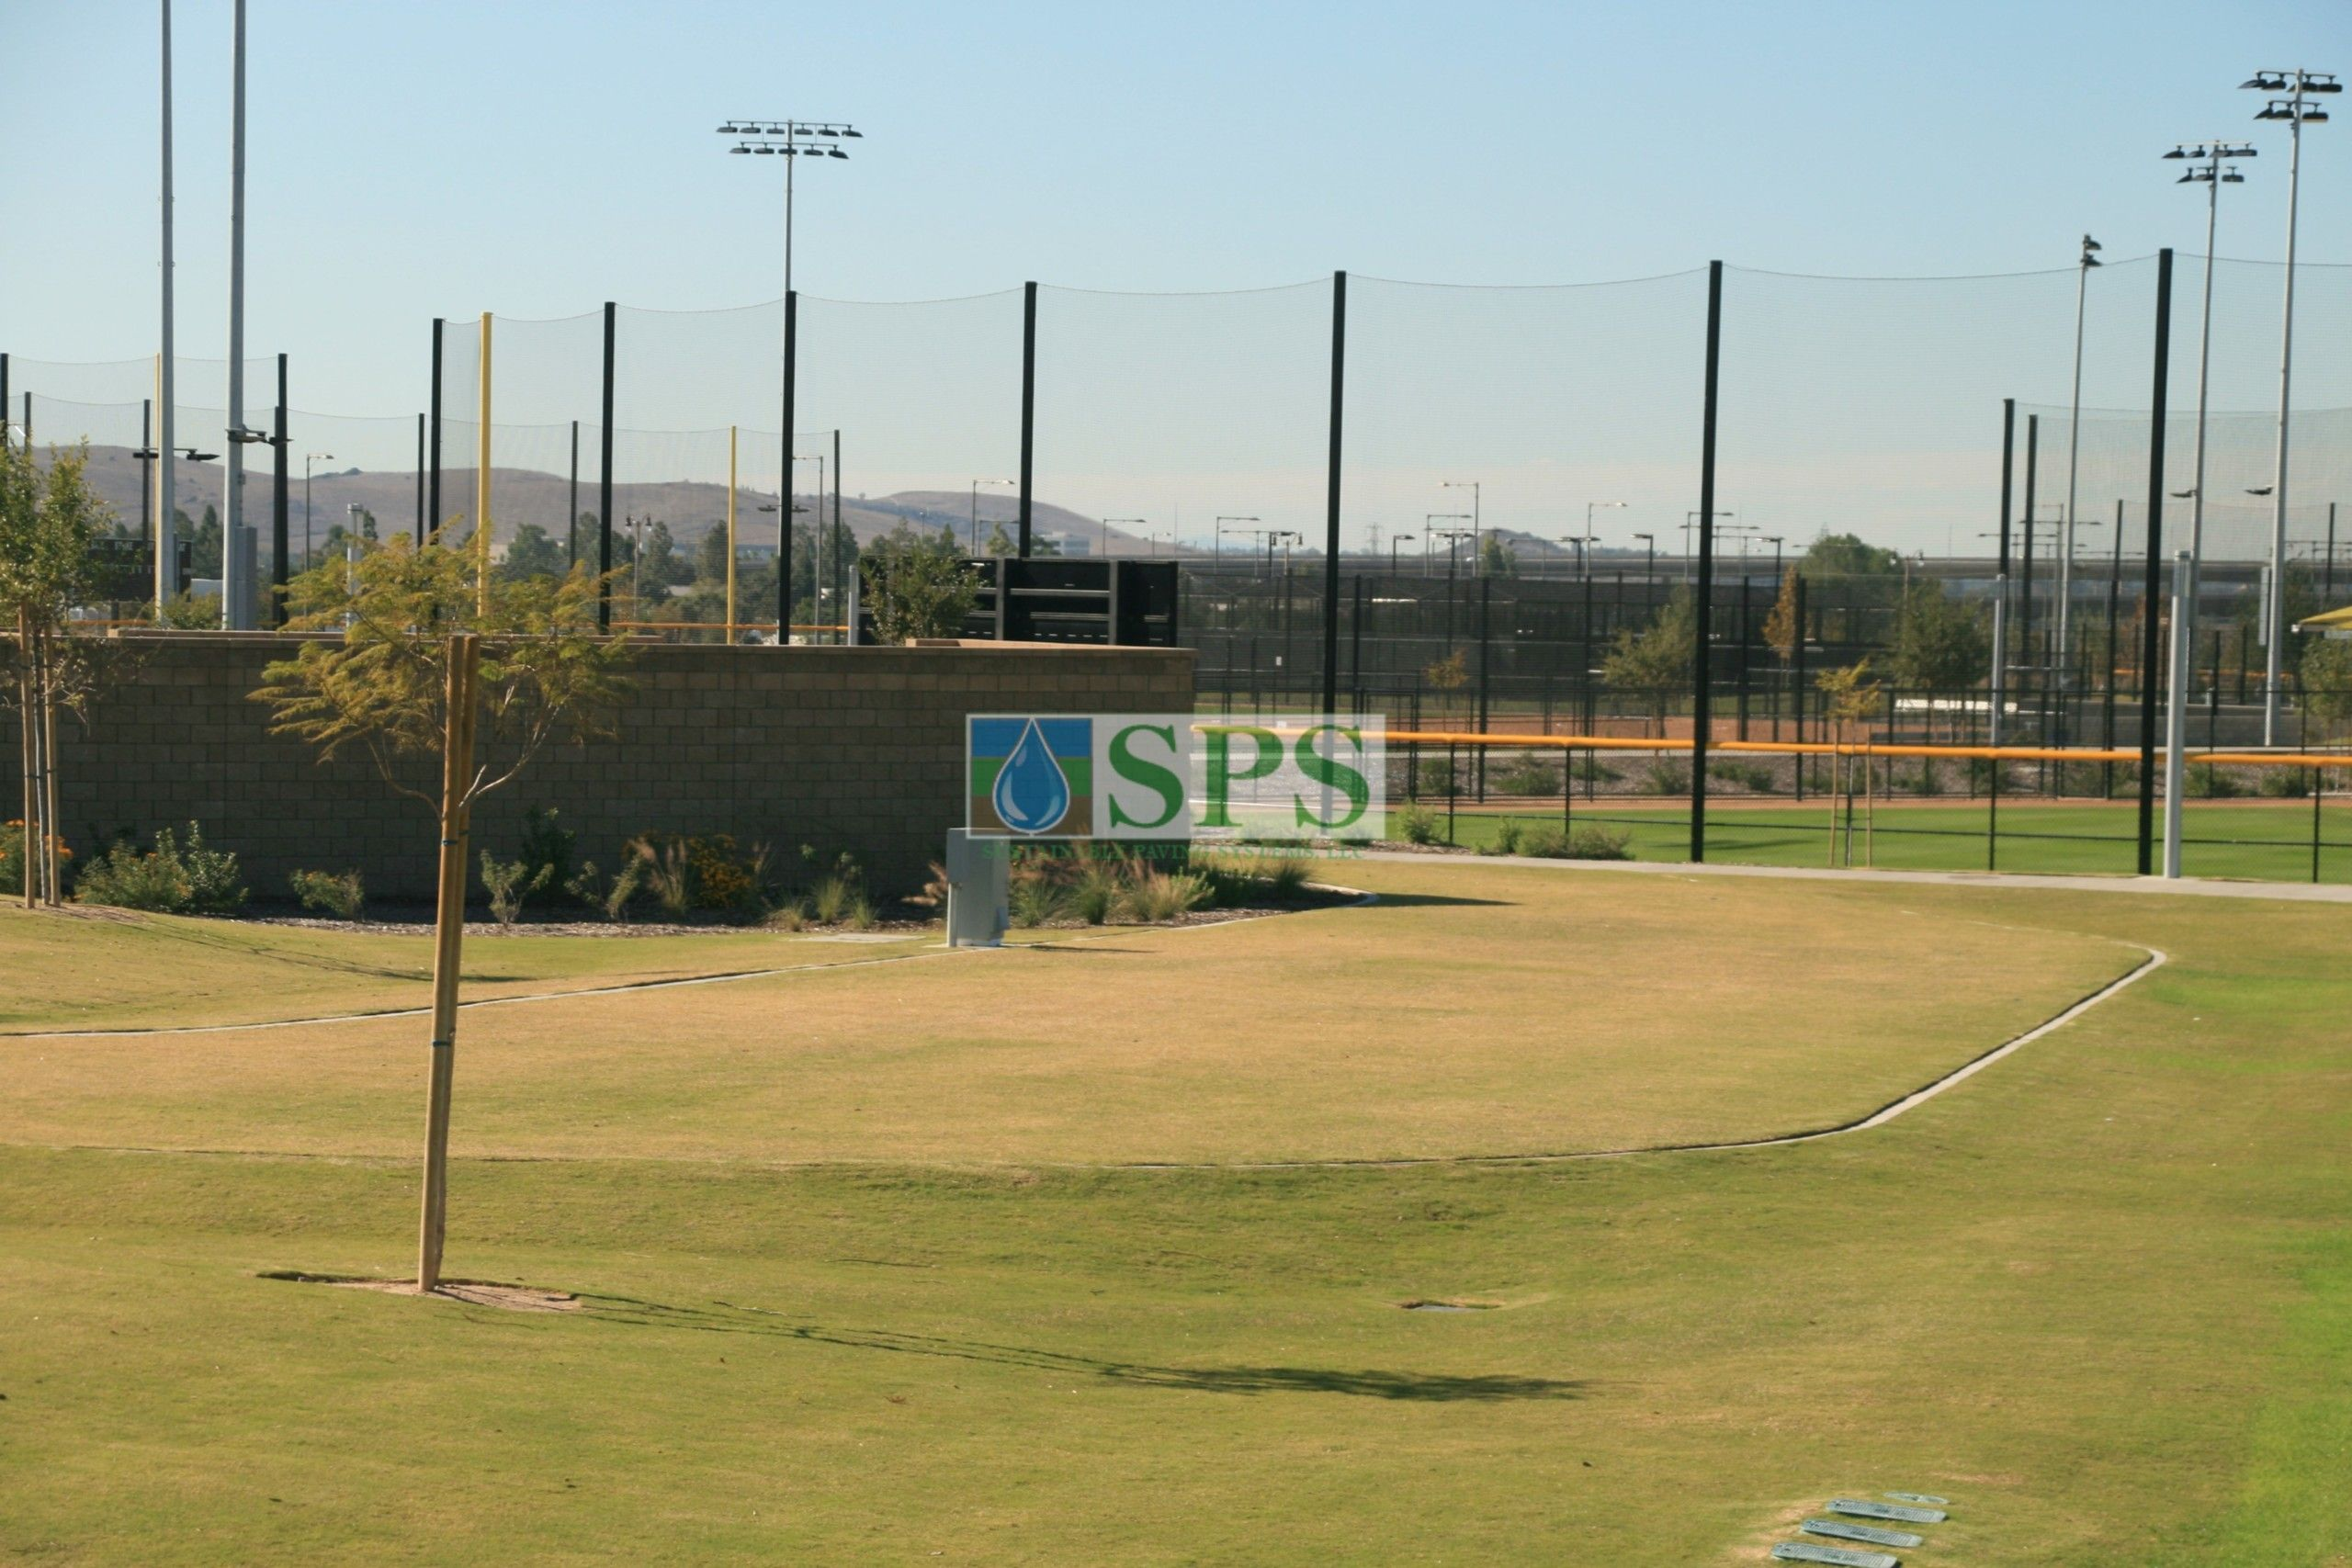 Grasscrete Fully Concealed installation at Orange County Great Park in Irvine, CA with a wide angle view of the park and the Emergency Access Road which meets state stormwater retention requirements.